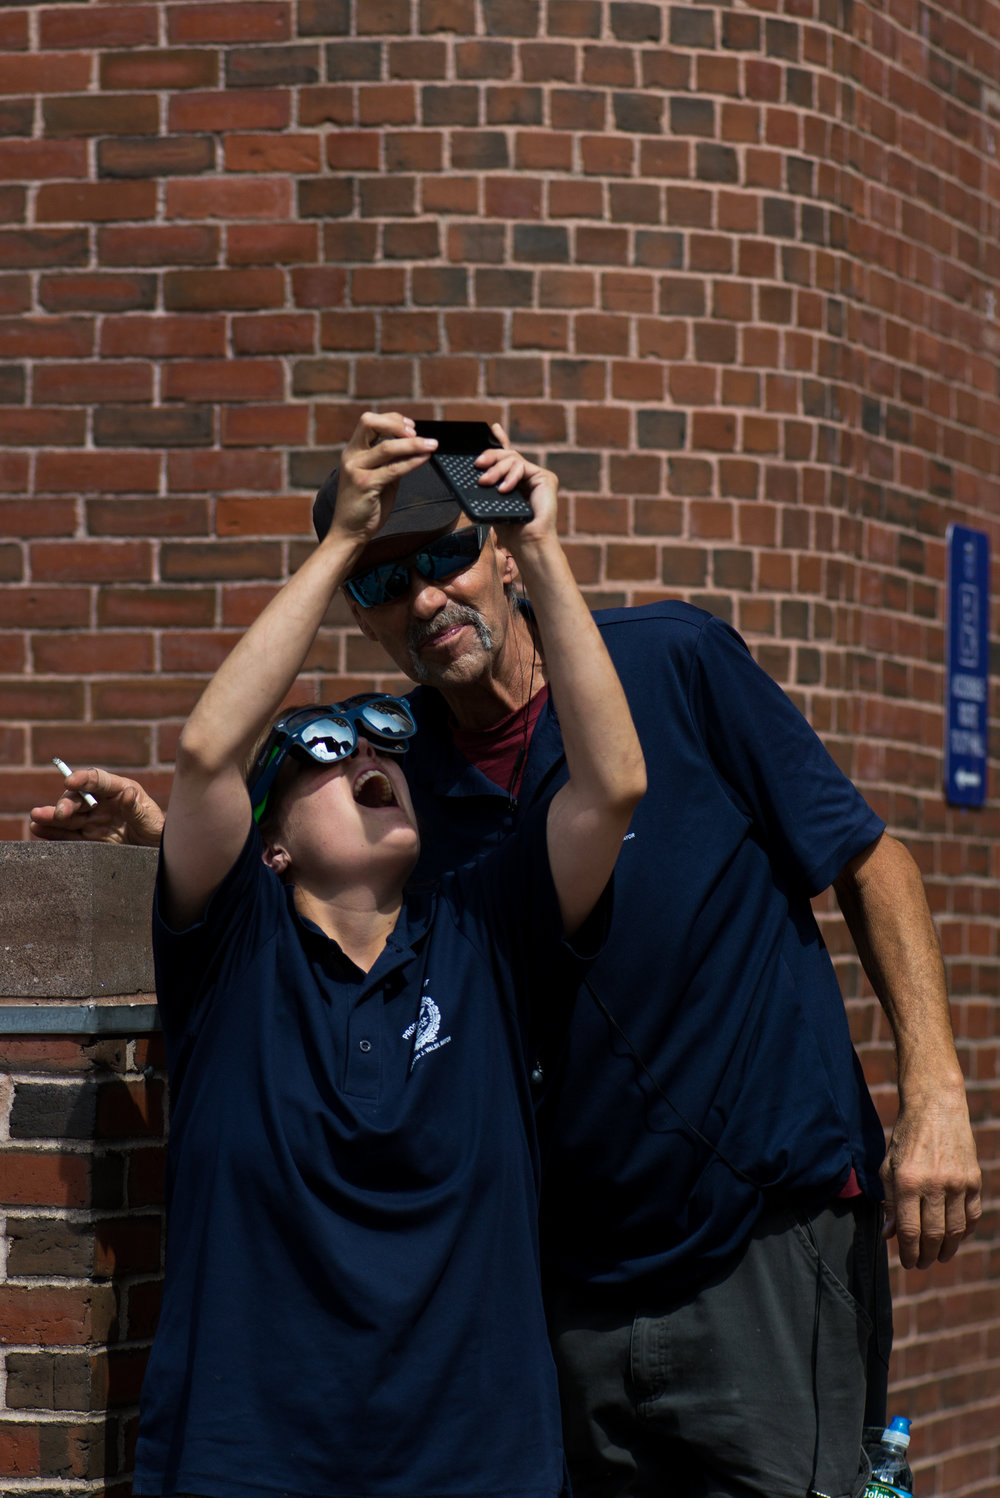 Boston, MA - 8/21/17 - A woman who declined to be identified and Tony Holm photograph the eclipse during the partial solar eclipse in City Hall Plaza on Monday, August 21, 2017. (Nicholas Pfosi for The Boston Globe) Topic: 22eclipsepic